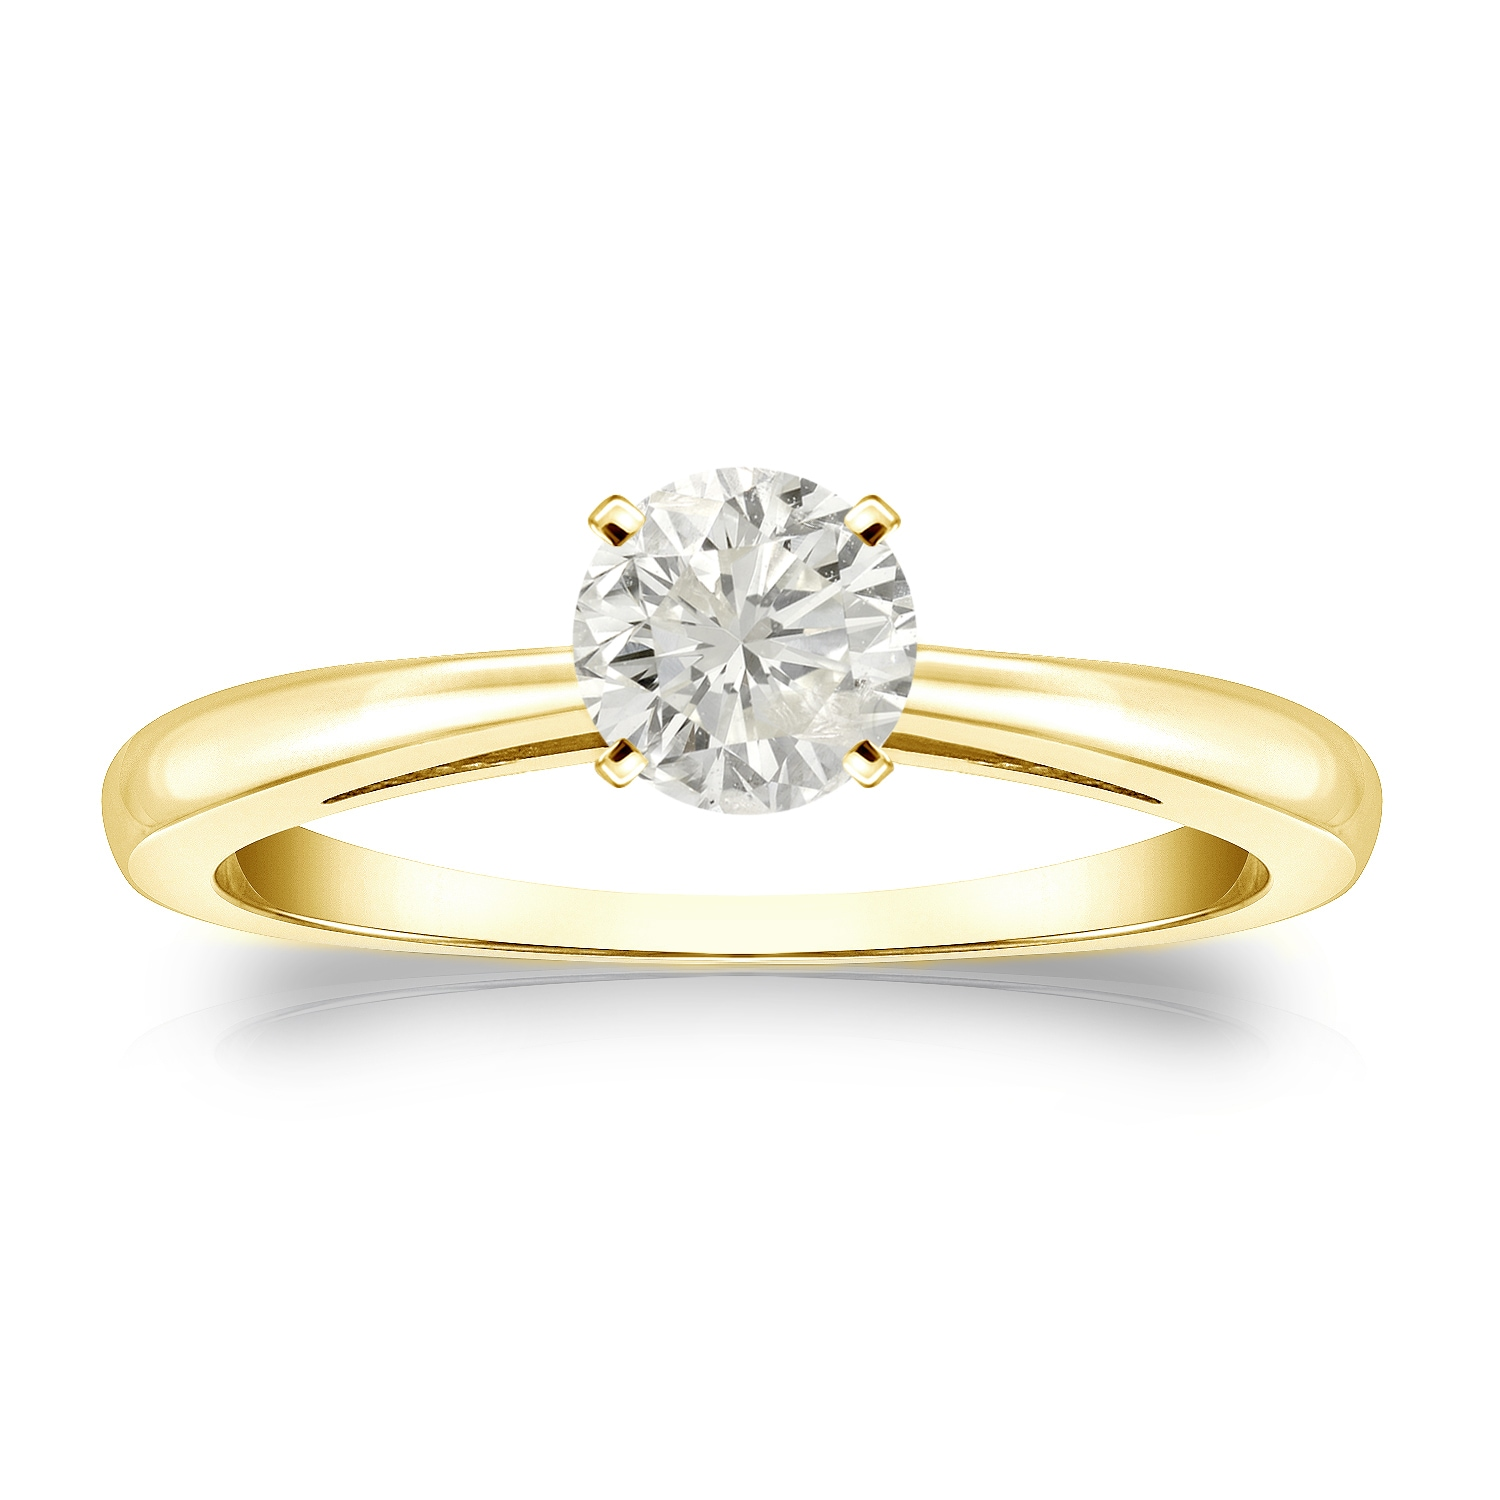 Wedding Rings   Find Great Jewelry Deals Shopping at Overstock.com cfc130173bf